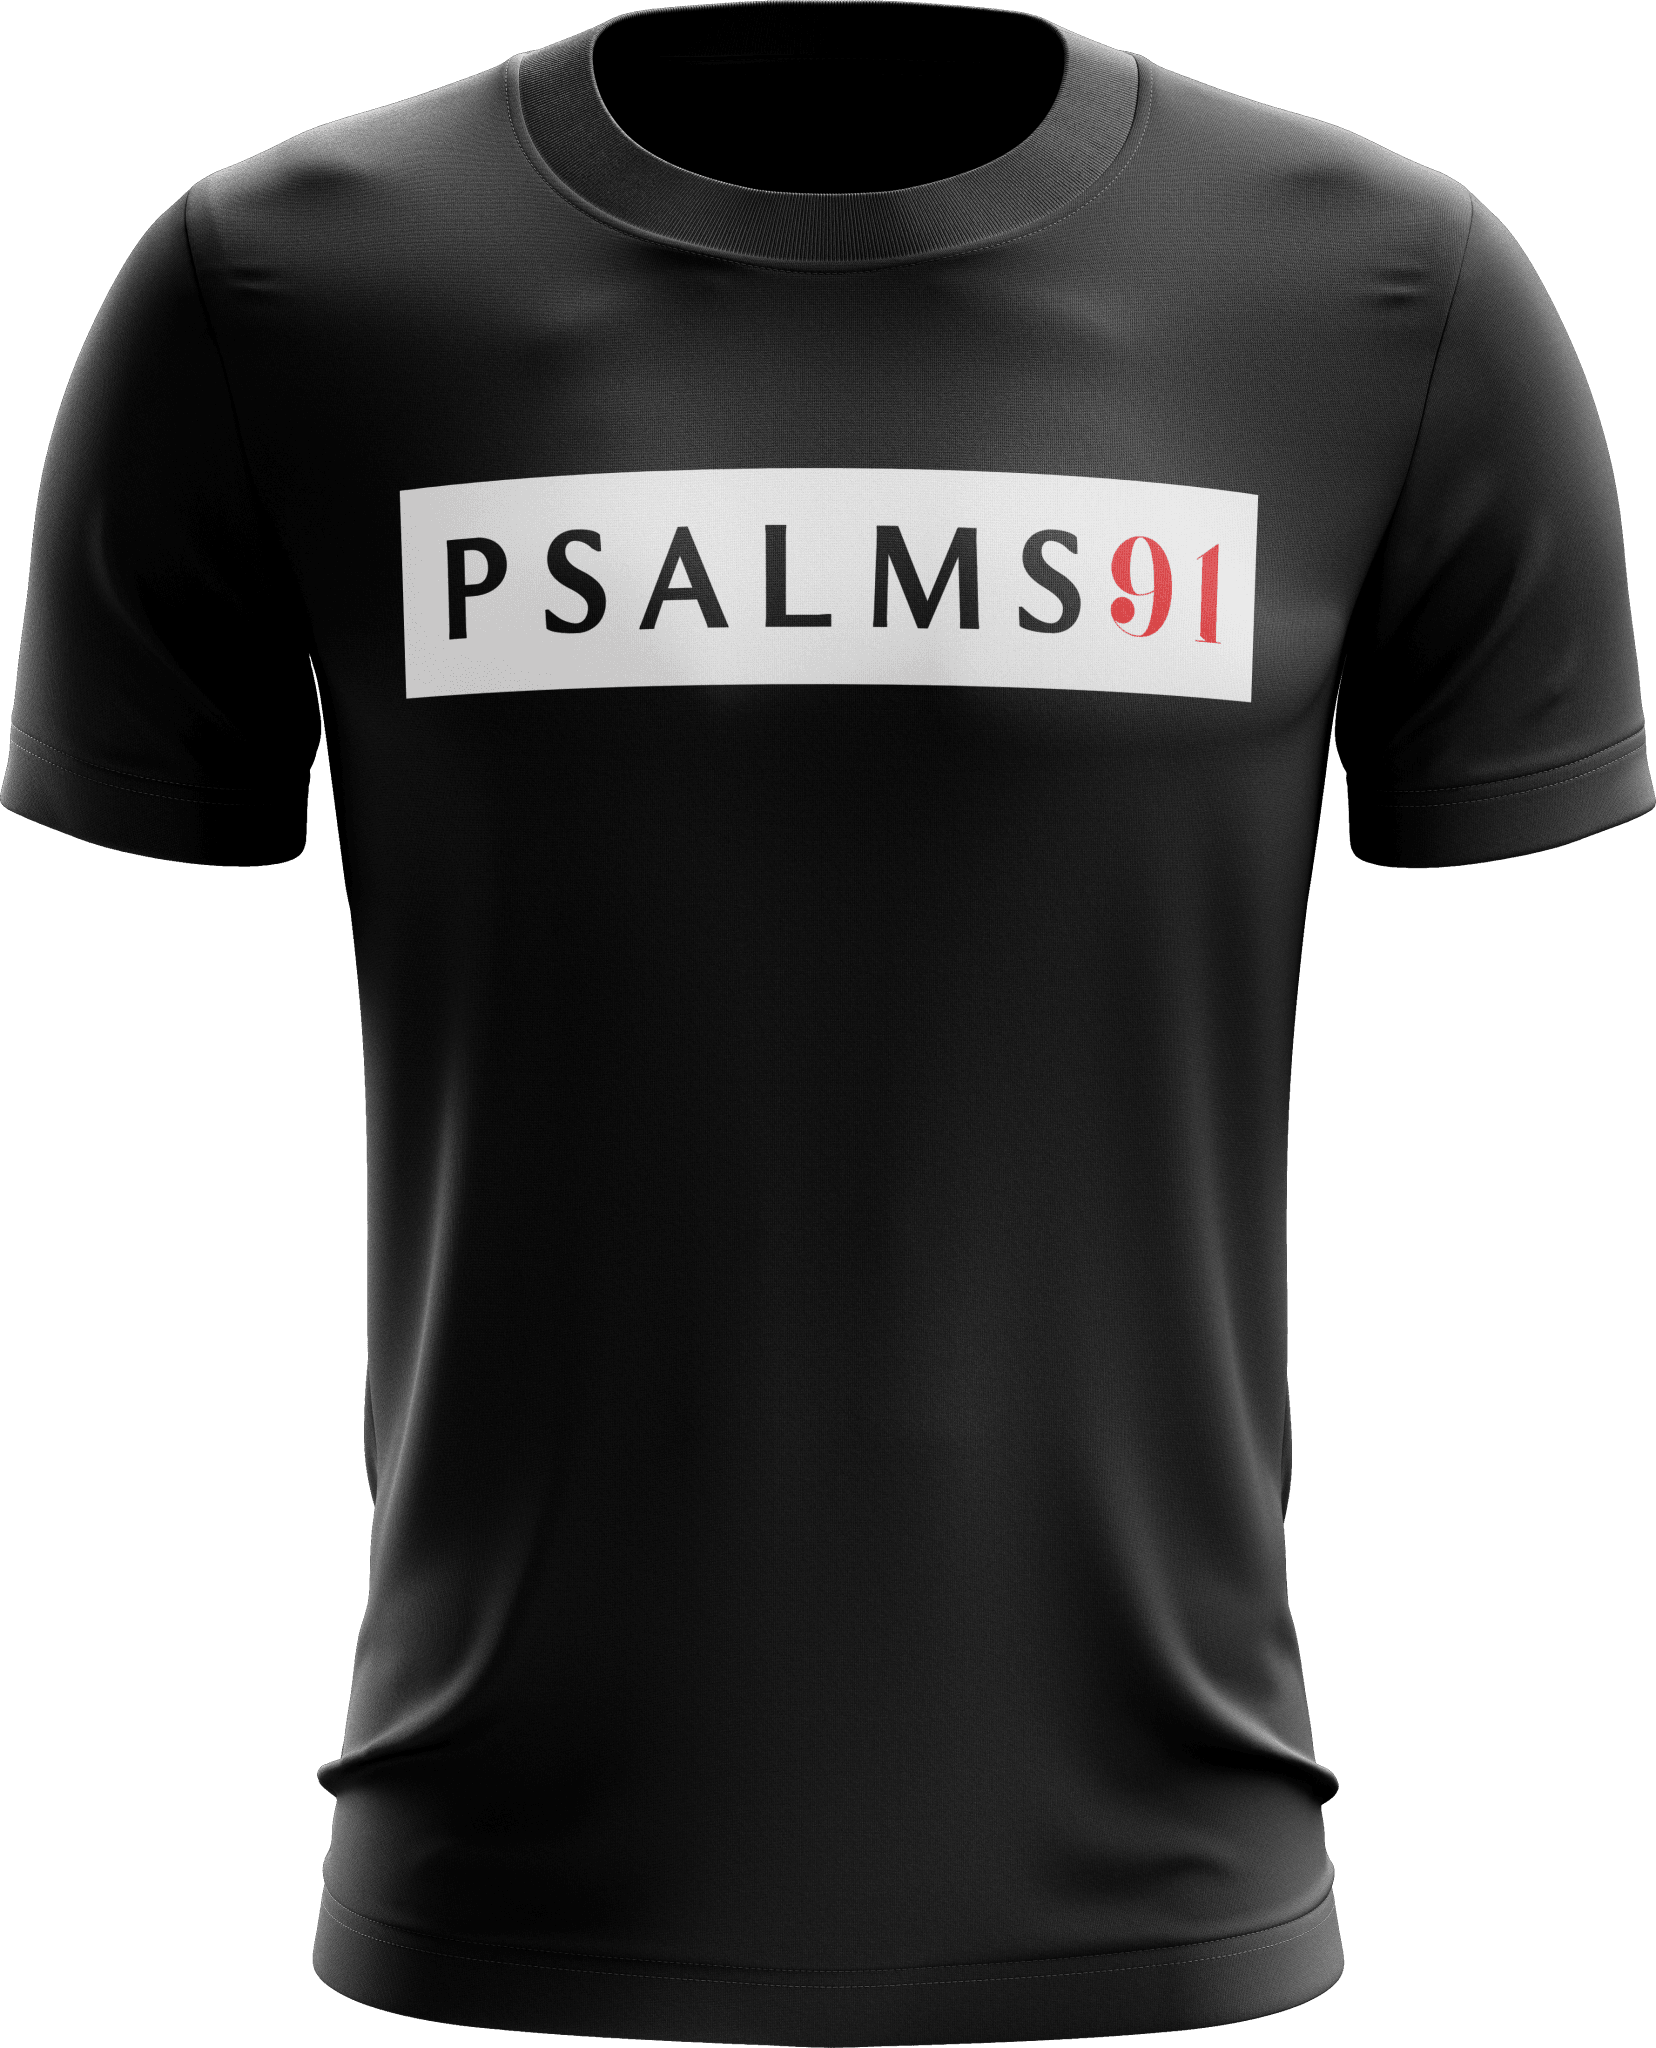 Psalms 91 Shirt (Black) - Vision Apparel Inc.